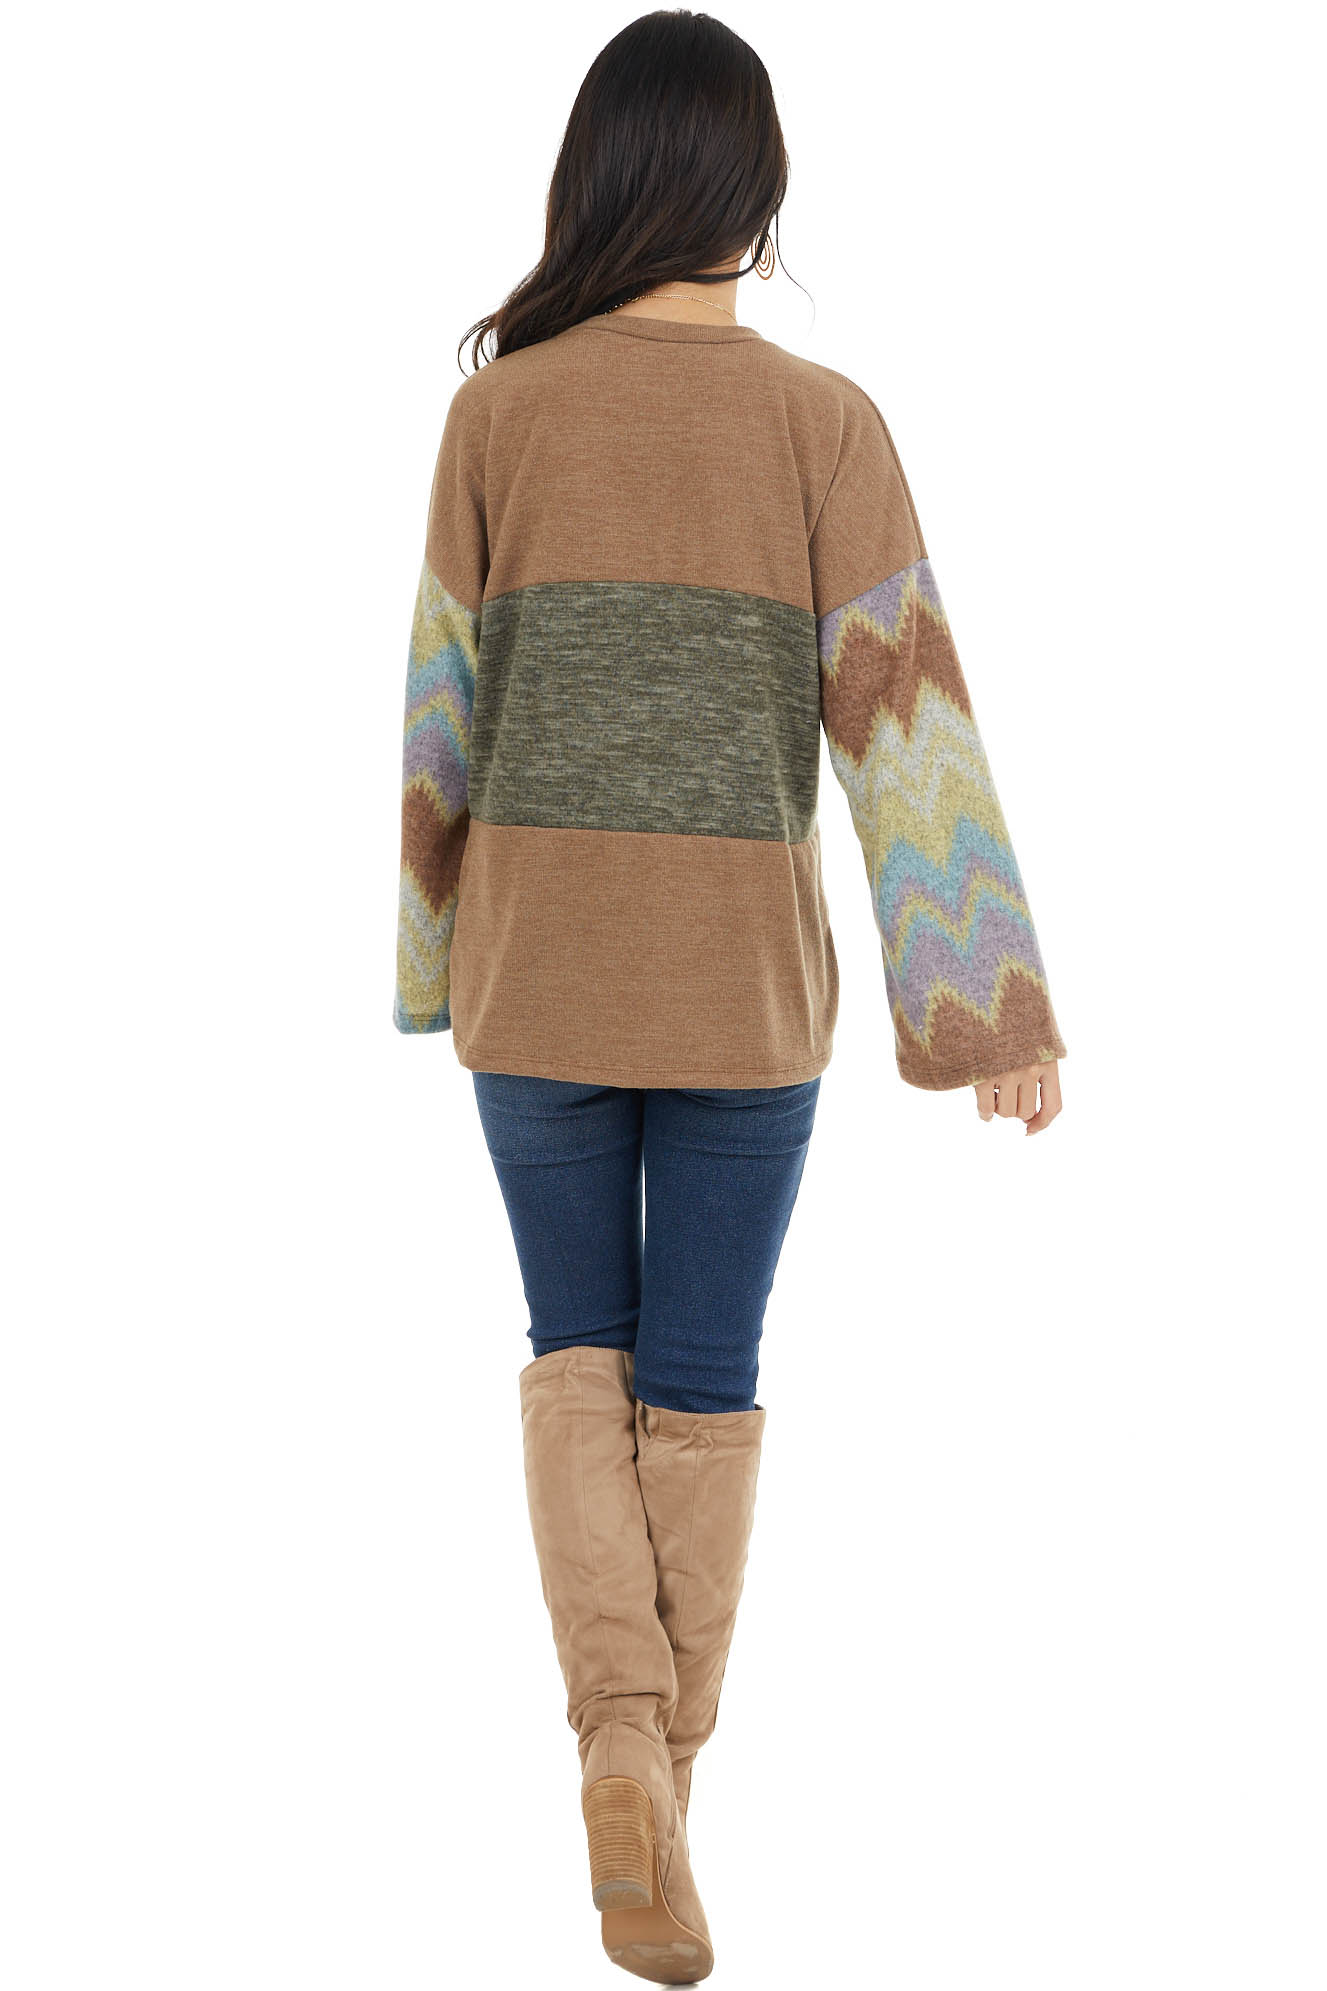 Olive and Hunter Green Knit Top with Aztec Print Sleeves